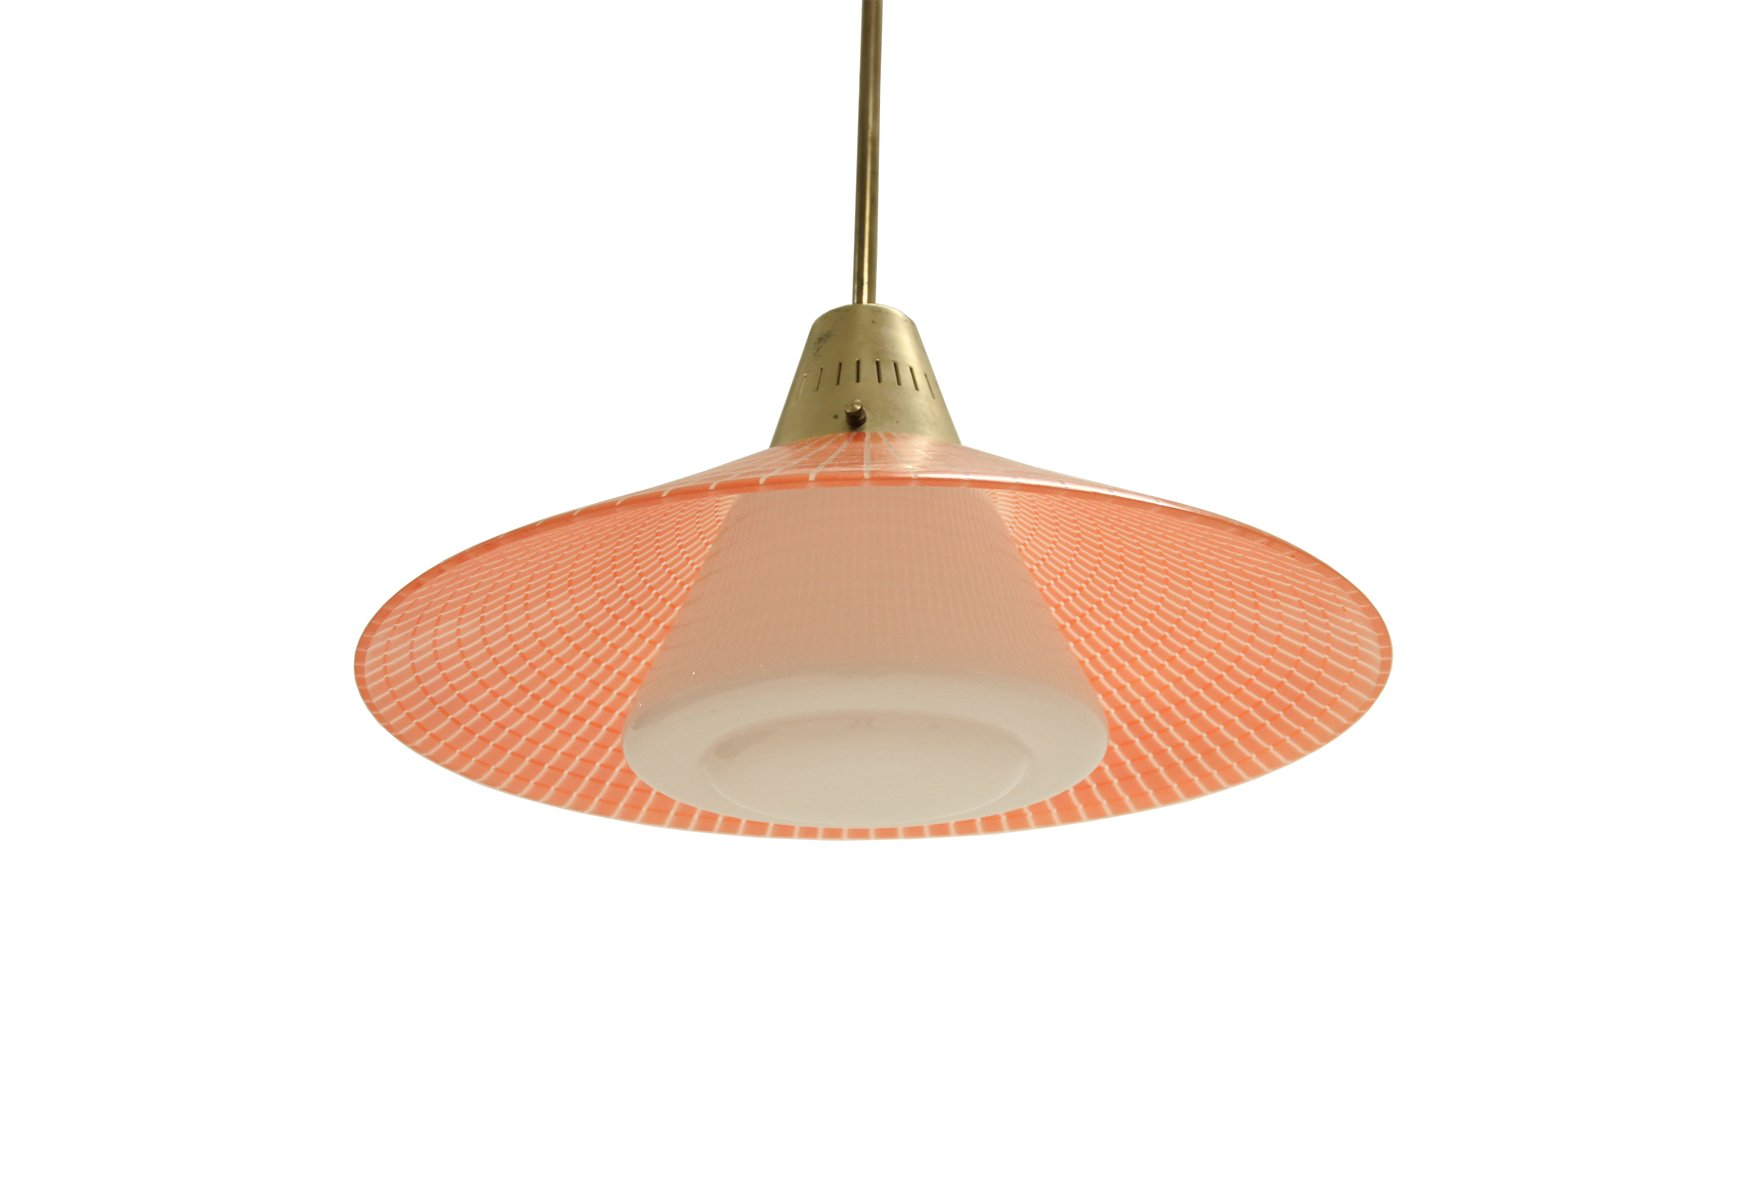 Scandinavian pendant light from tr co 1960s for sale at pamono arubaitofo Image collections